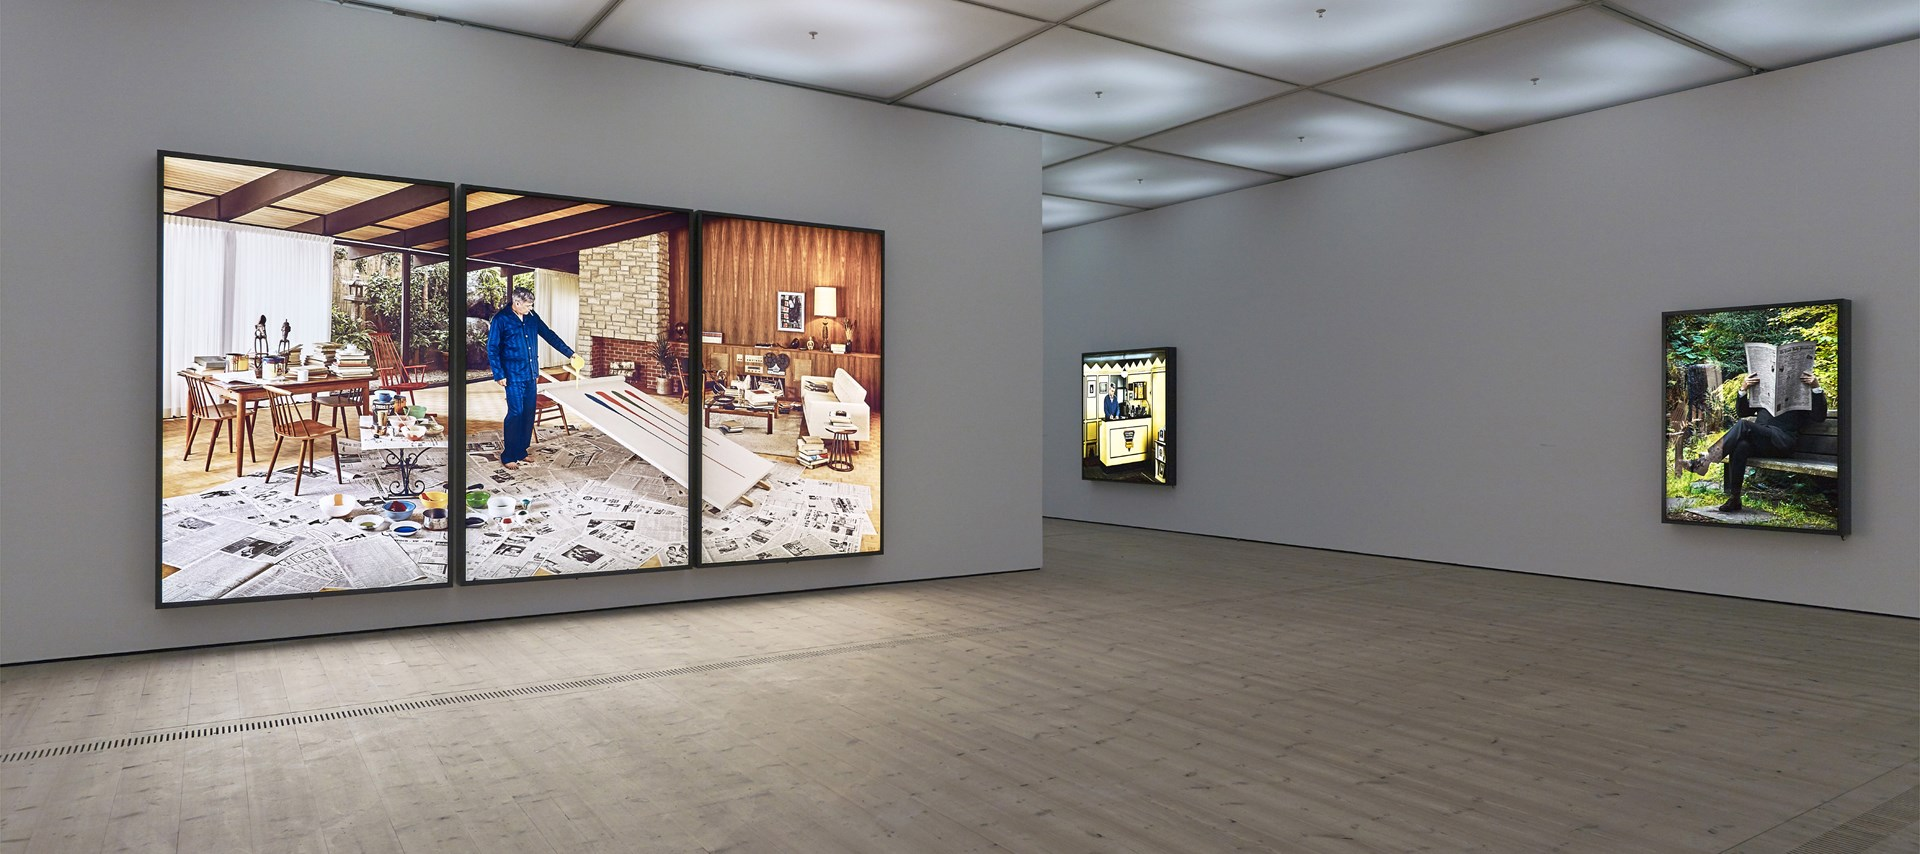 Rodney Graham: That's Not Me: Installation view. Image credit: John Mckenzie © BALTIC